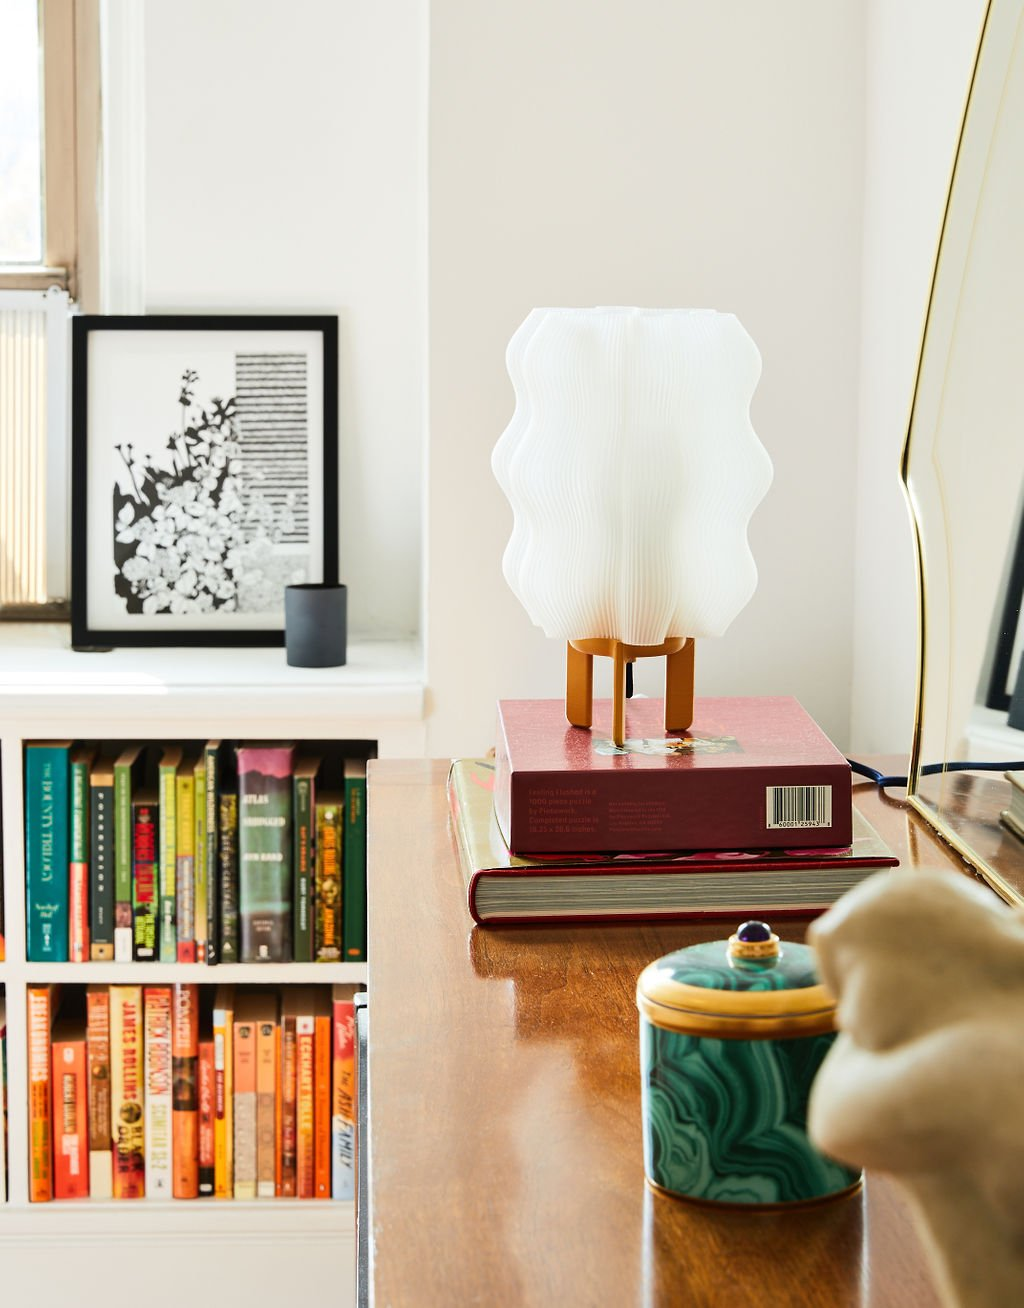 Harling Ross's Apartment Is Full of Vintage Treasures